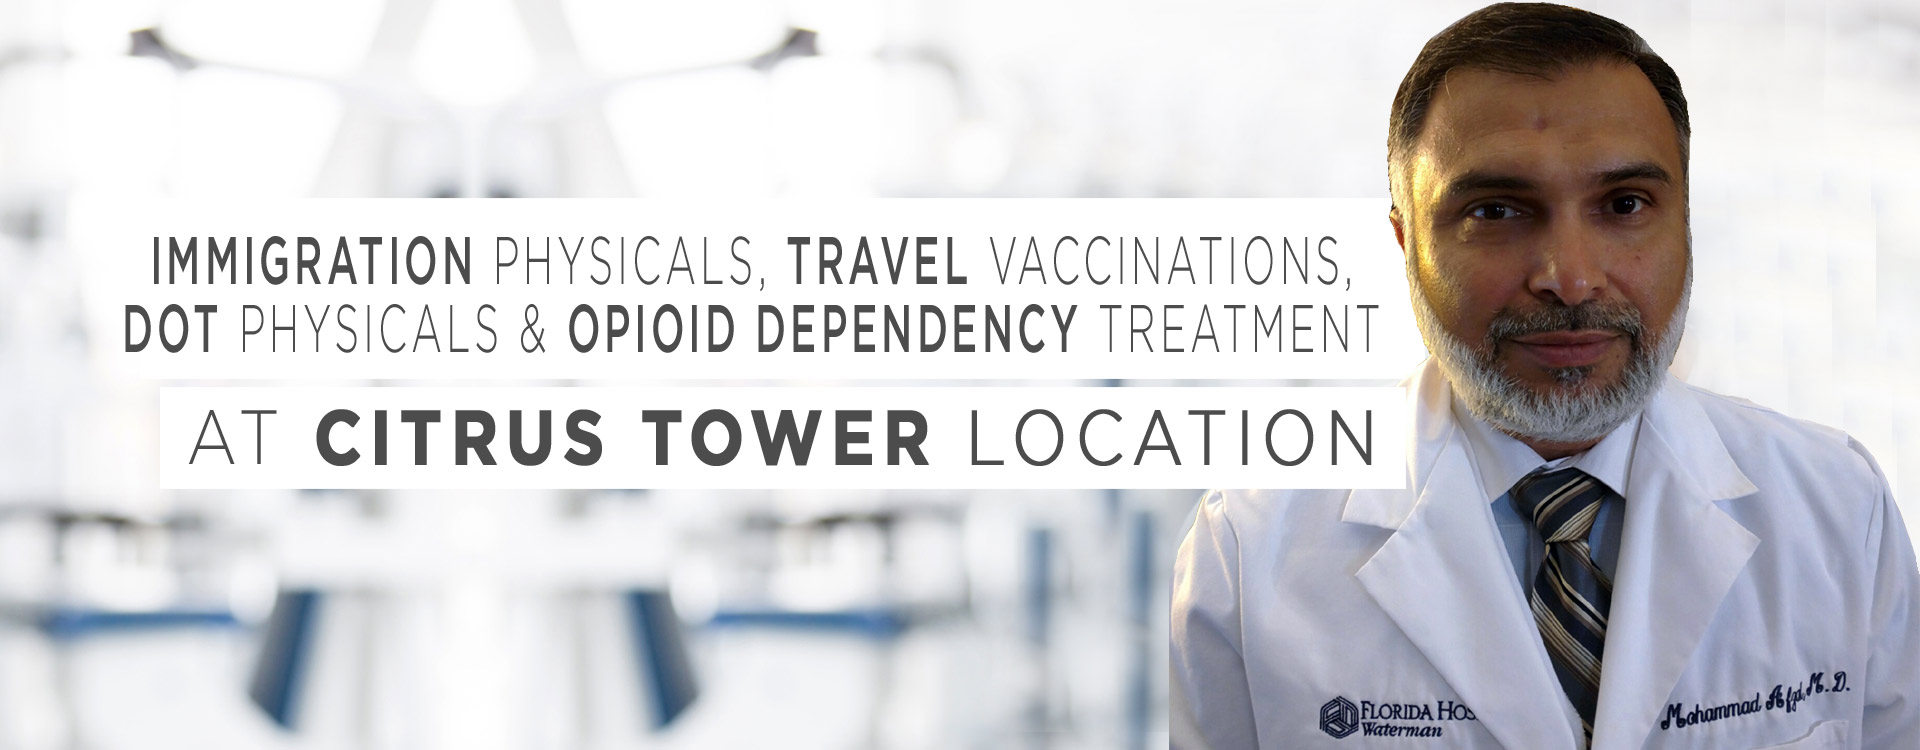 immigration physicals, travel vaccinations, DOT physicals